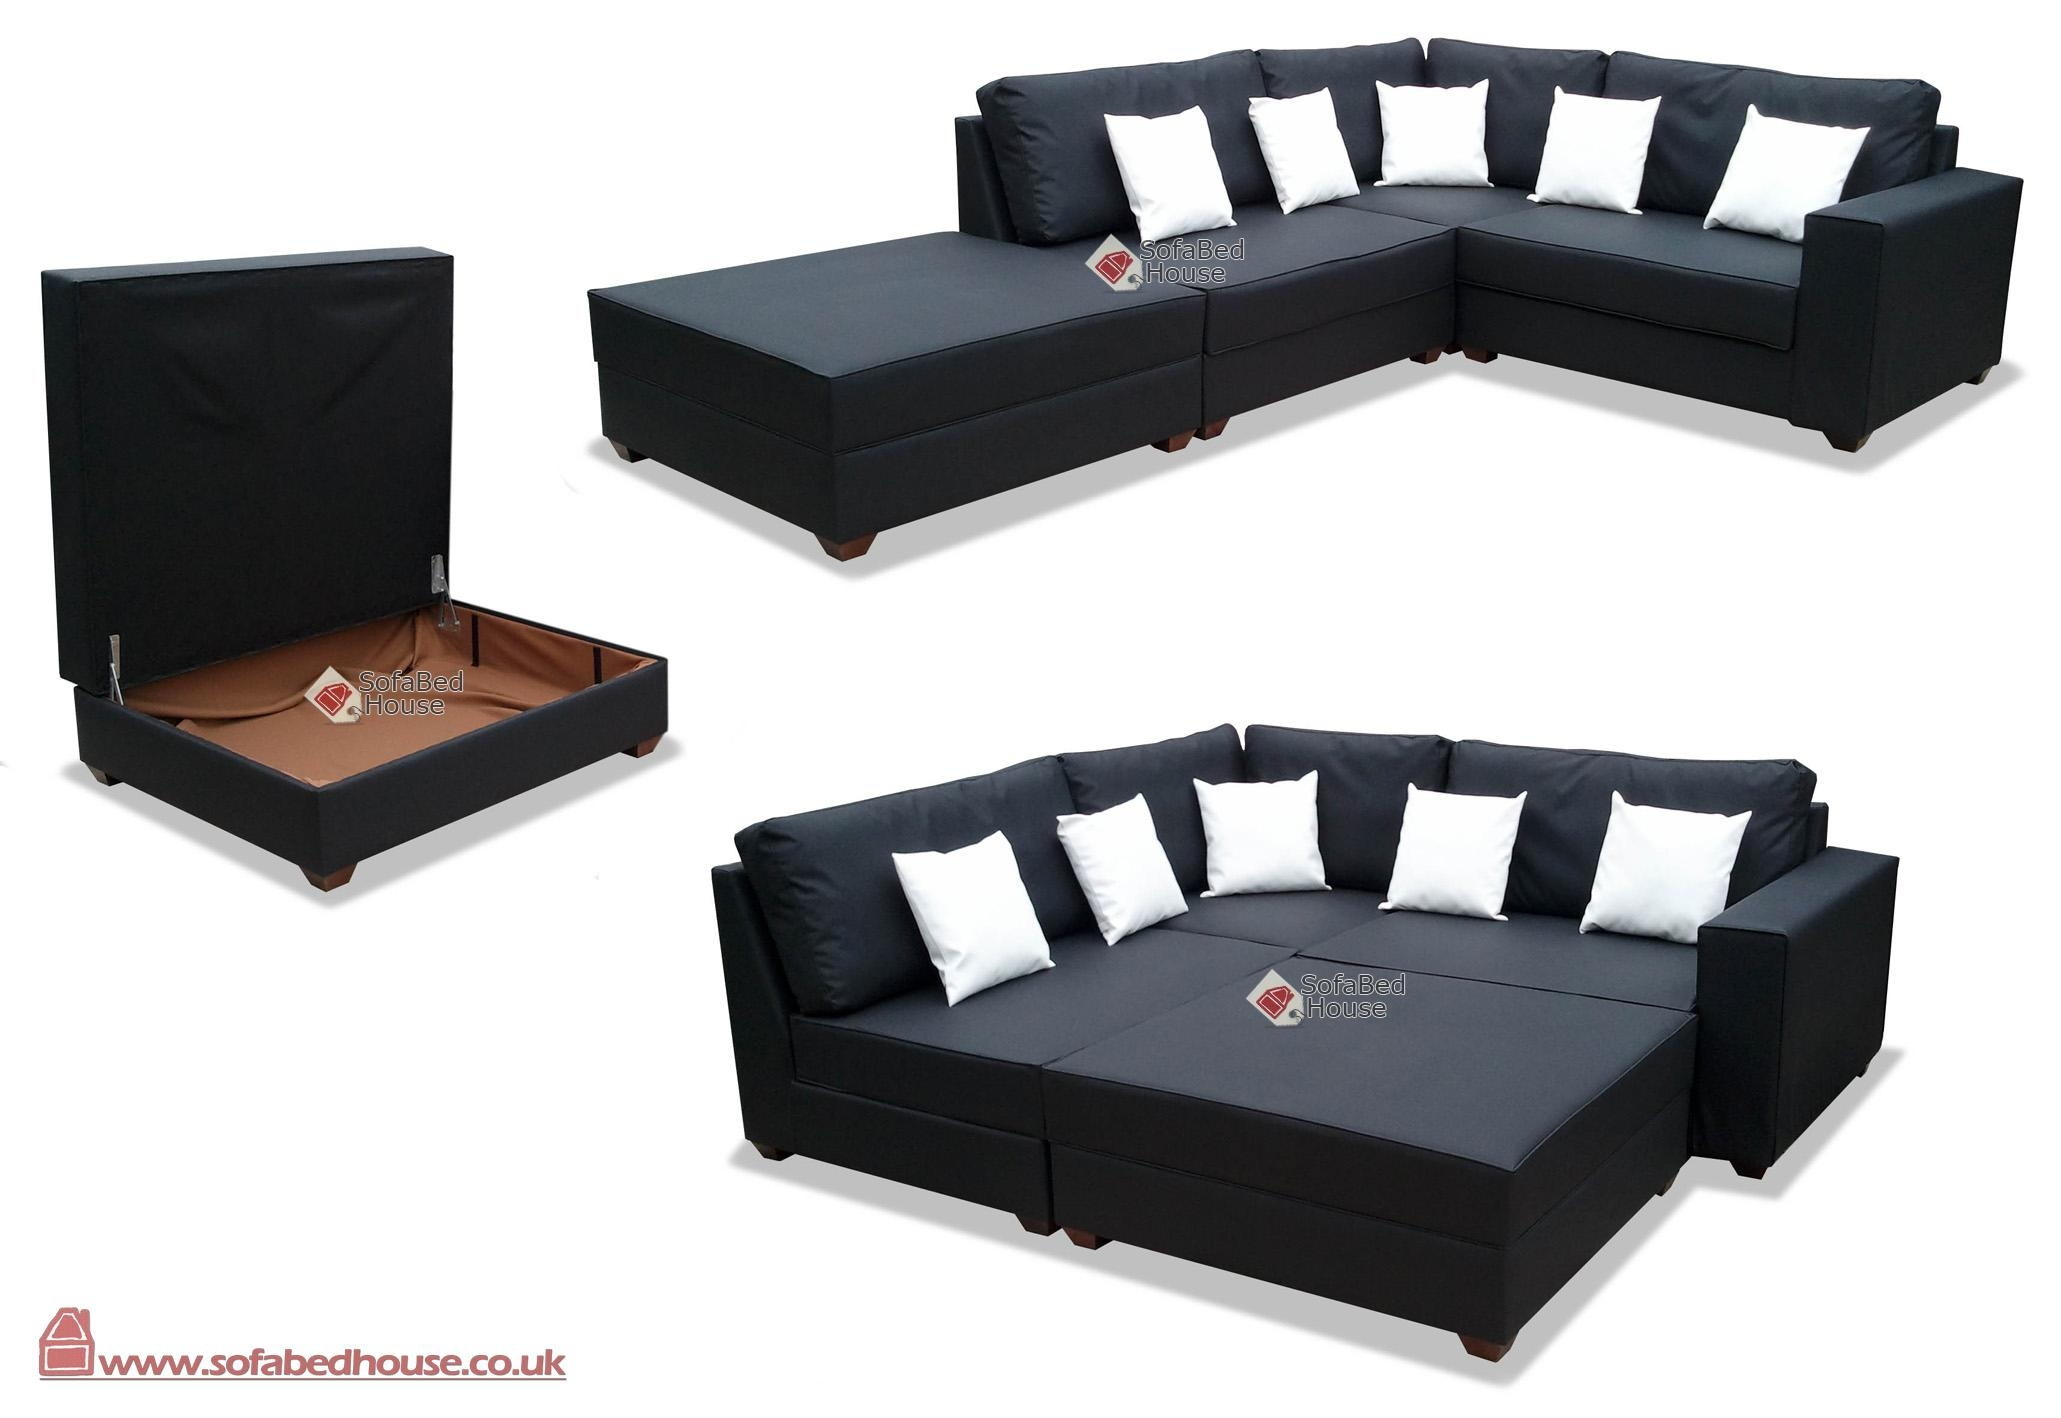 Cheap Corner Sofa Beds Uk | Crepeloversca Pertaining To Cheap Corner Sofa Beds (Image 3 of 20)